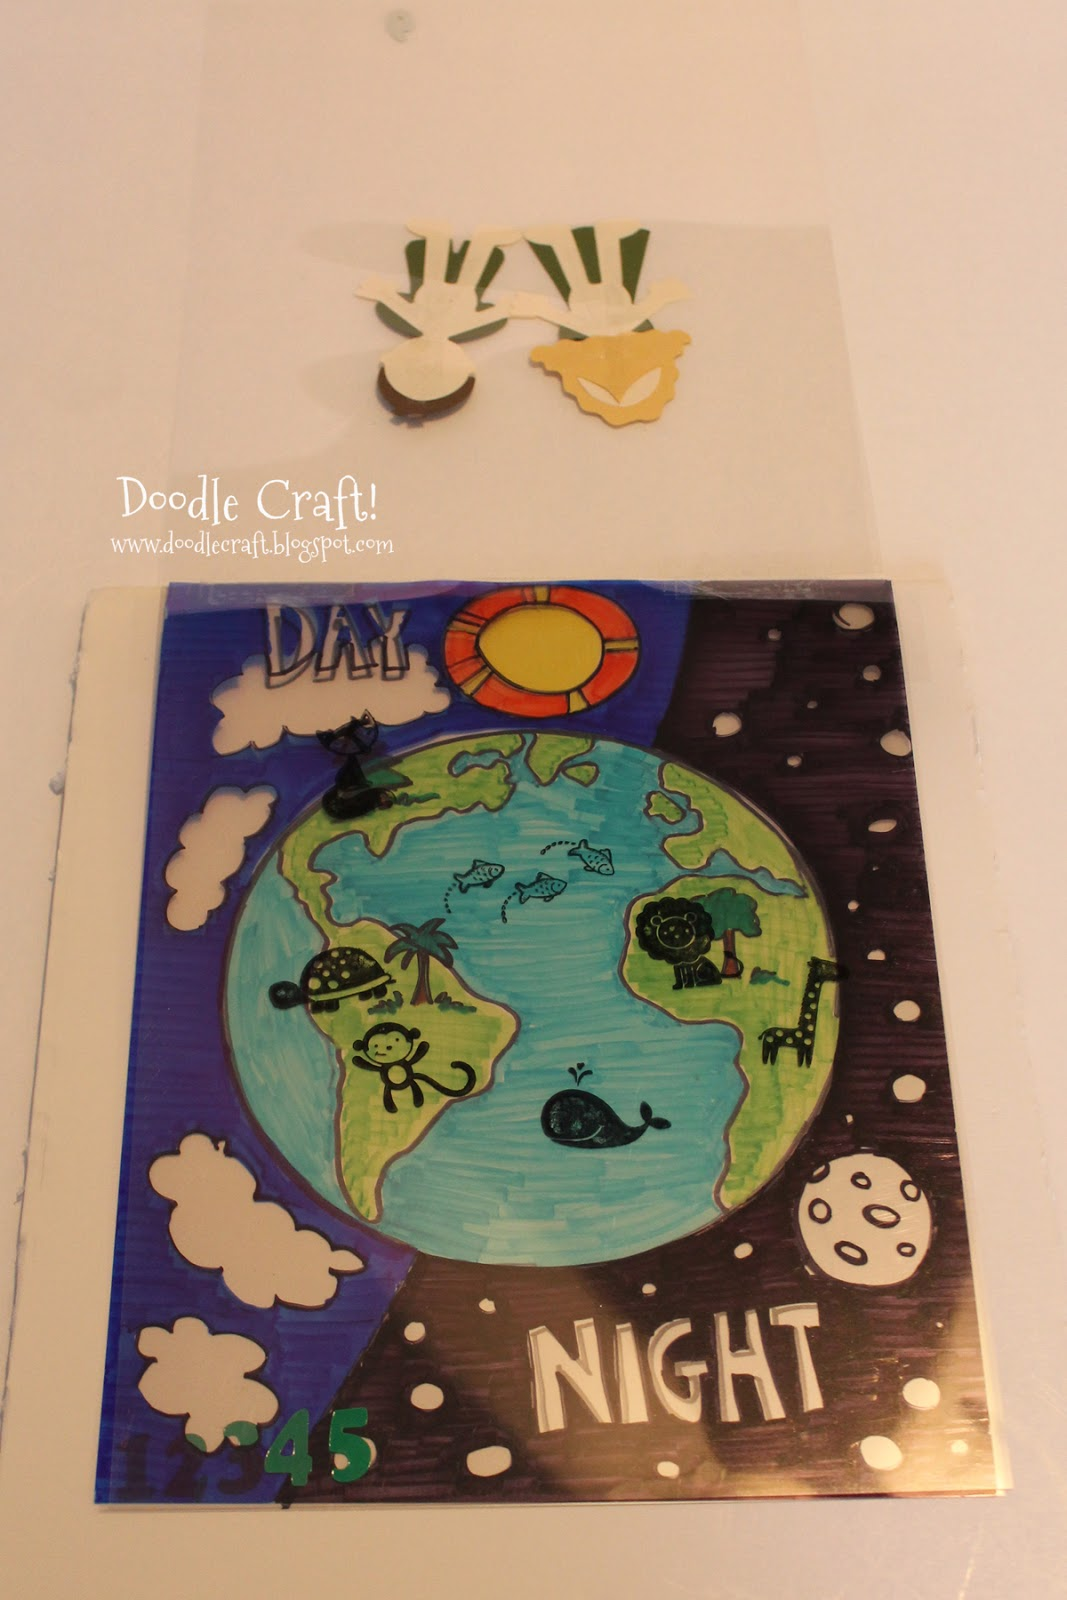 doodlecraft the creation lesson bible story visual aid